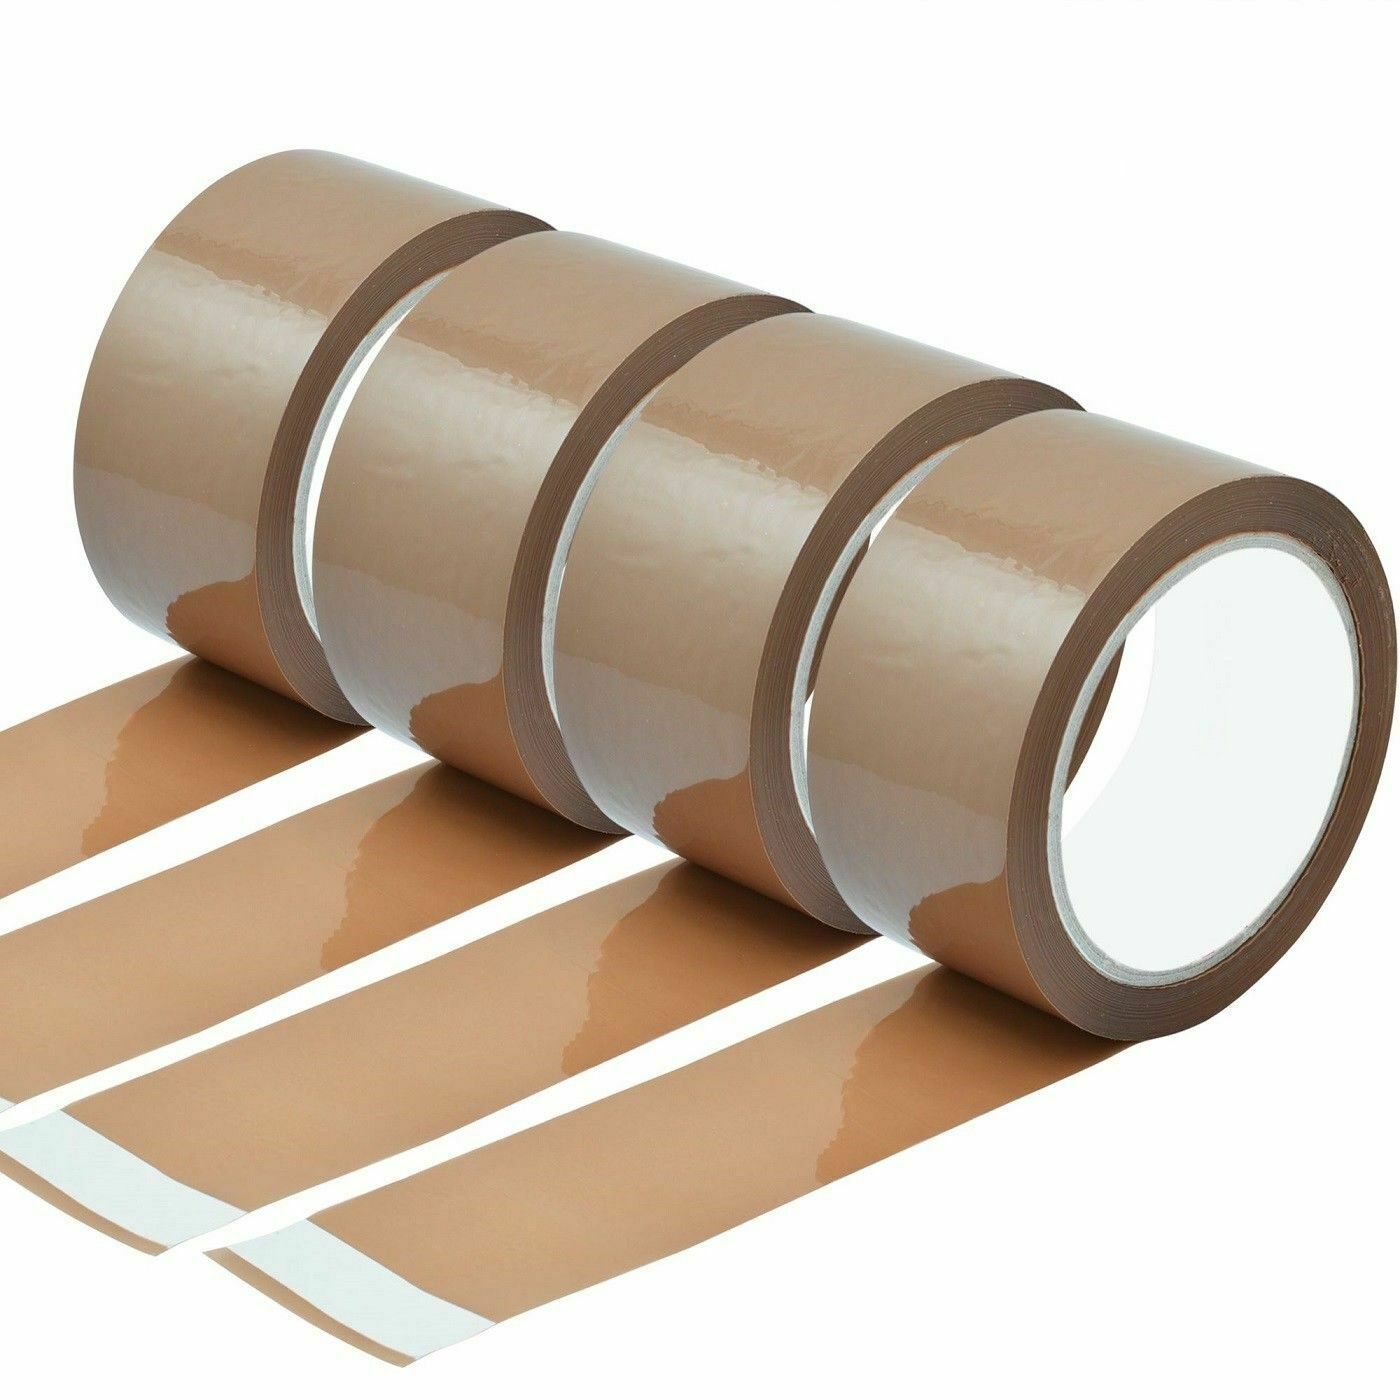 6 Pack Brown Packing Parcel Tape Packaging Sellotape Sealing 132m Roll